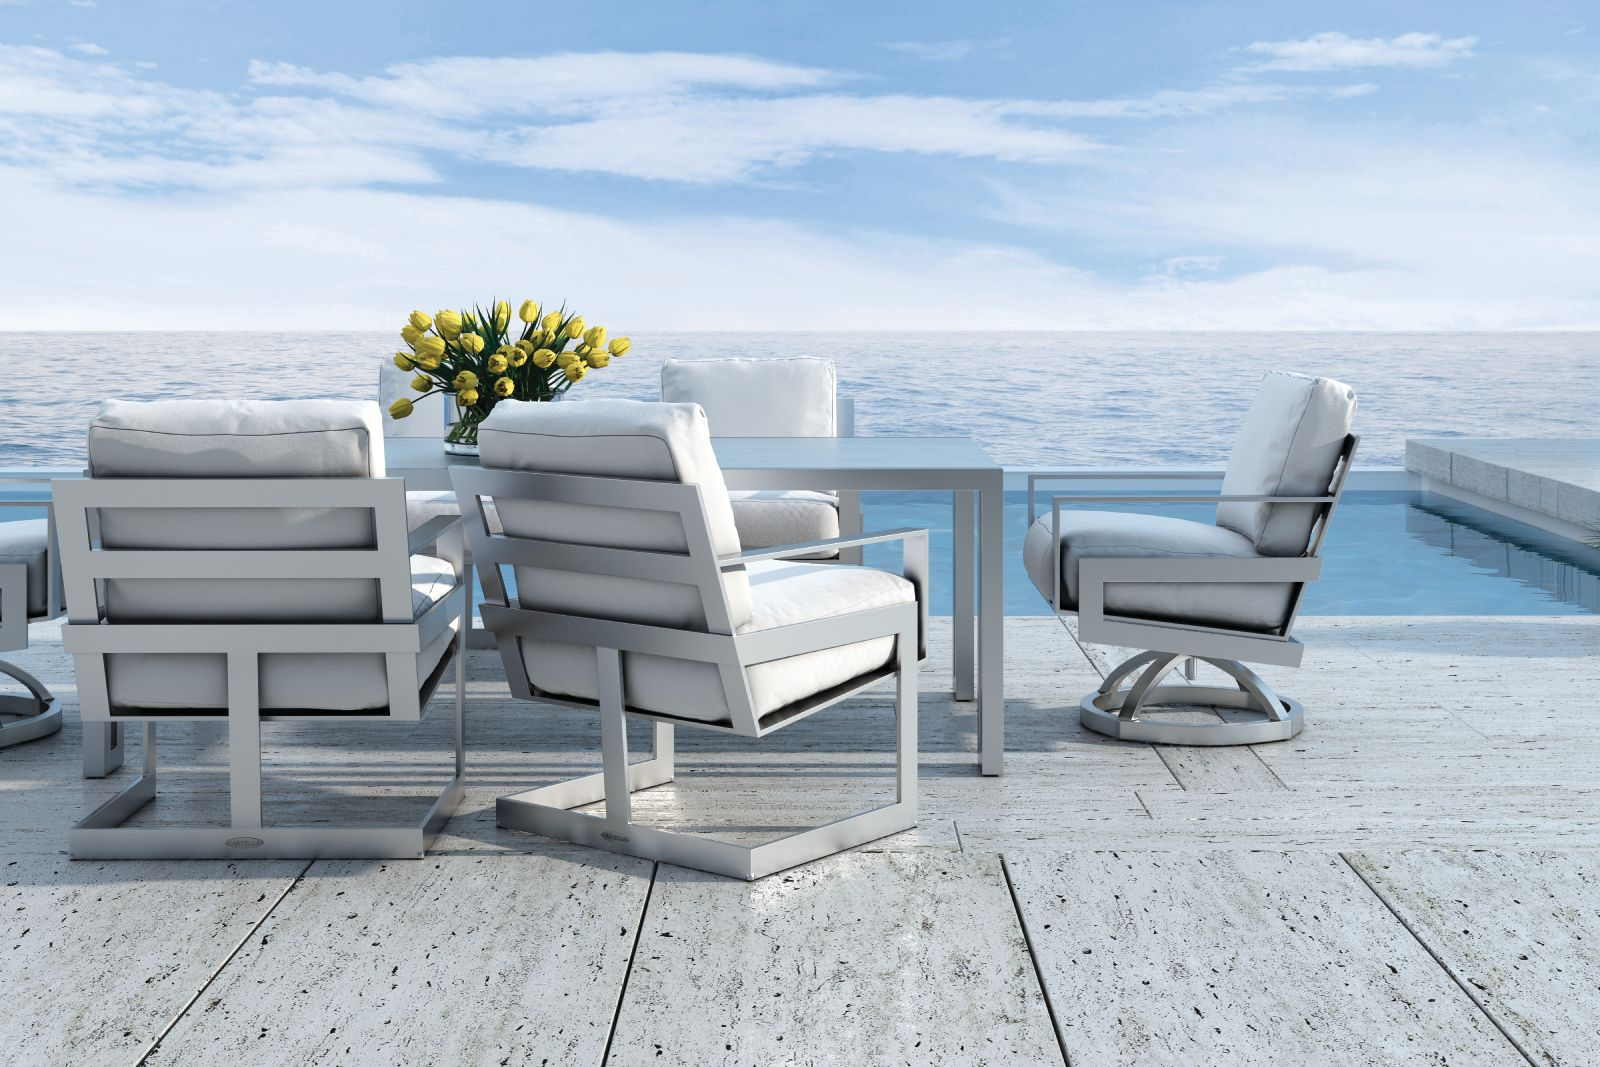 Pin by Castelle on Eclipse Collection | Luxury outdoor ... on Fine Living Patio Set id=61955